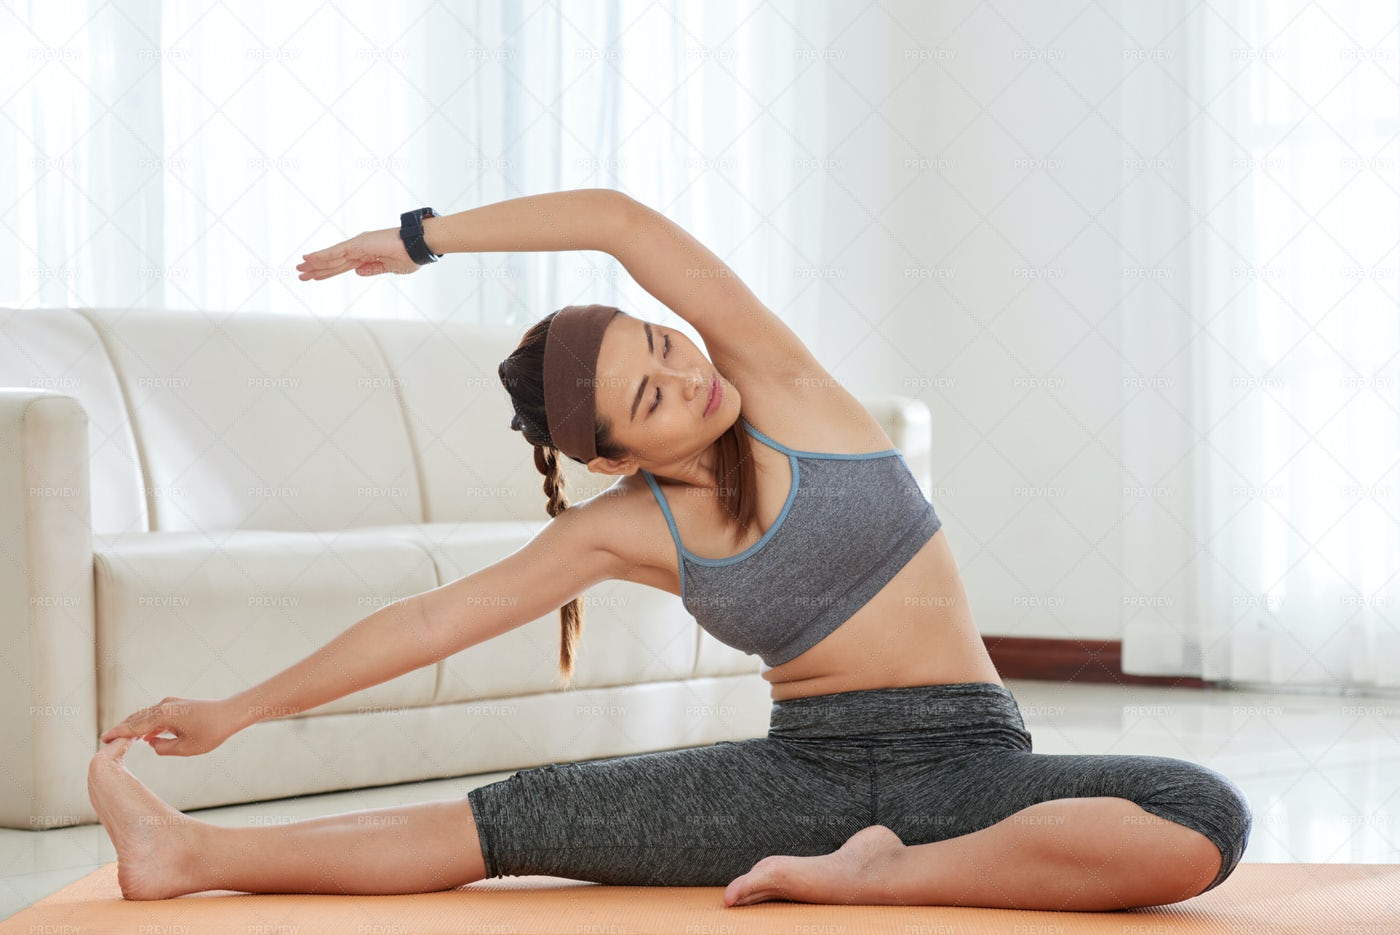 Woman Stretching At Home: Stock Photos